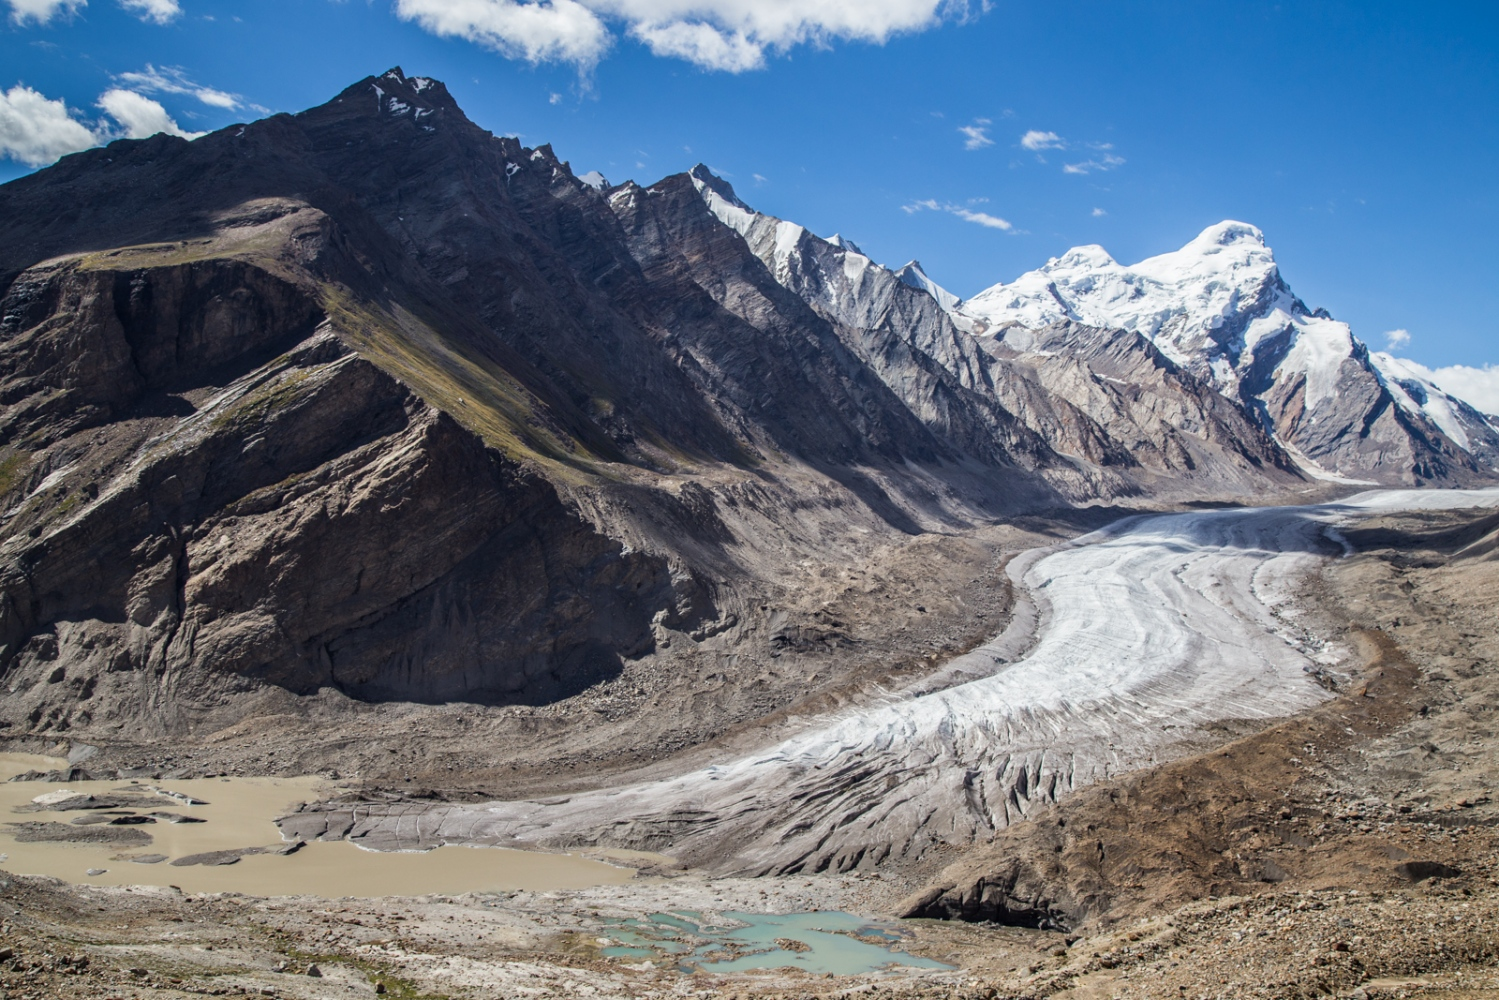 """The retreating Drang Drung glacier in India's Zanskar Valley. The global thermostat is being turned up by carbon and black carbon emissions and the glaciers are some of the first signs of a warming world. They are all melting at significant rates, especially so in the Himalayas. In this image pools of water are forming at the end of the ice that, according to locals, was hundreds of metres longer and thicker no more than 40 years ago. """"We used to go skiing on Drang Drung. Now it is impossible,"""" said Urgain Dorjey, a Zanskar local and trekking guide. Small streams are also forming on top of the ice."""